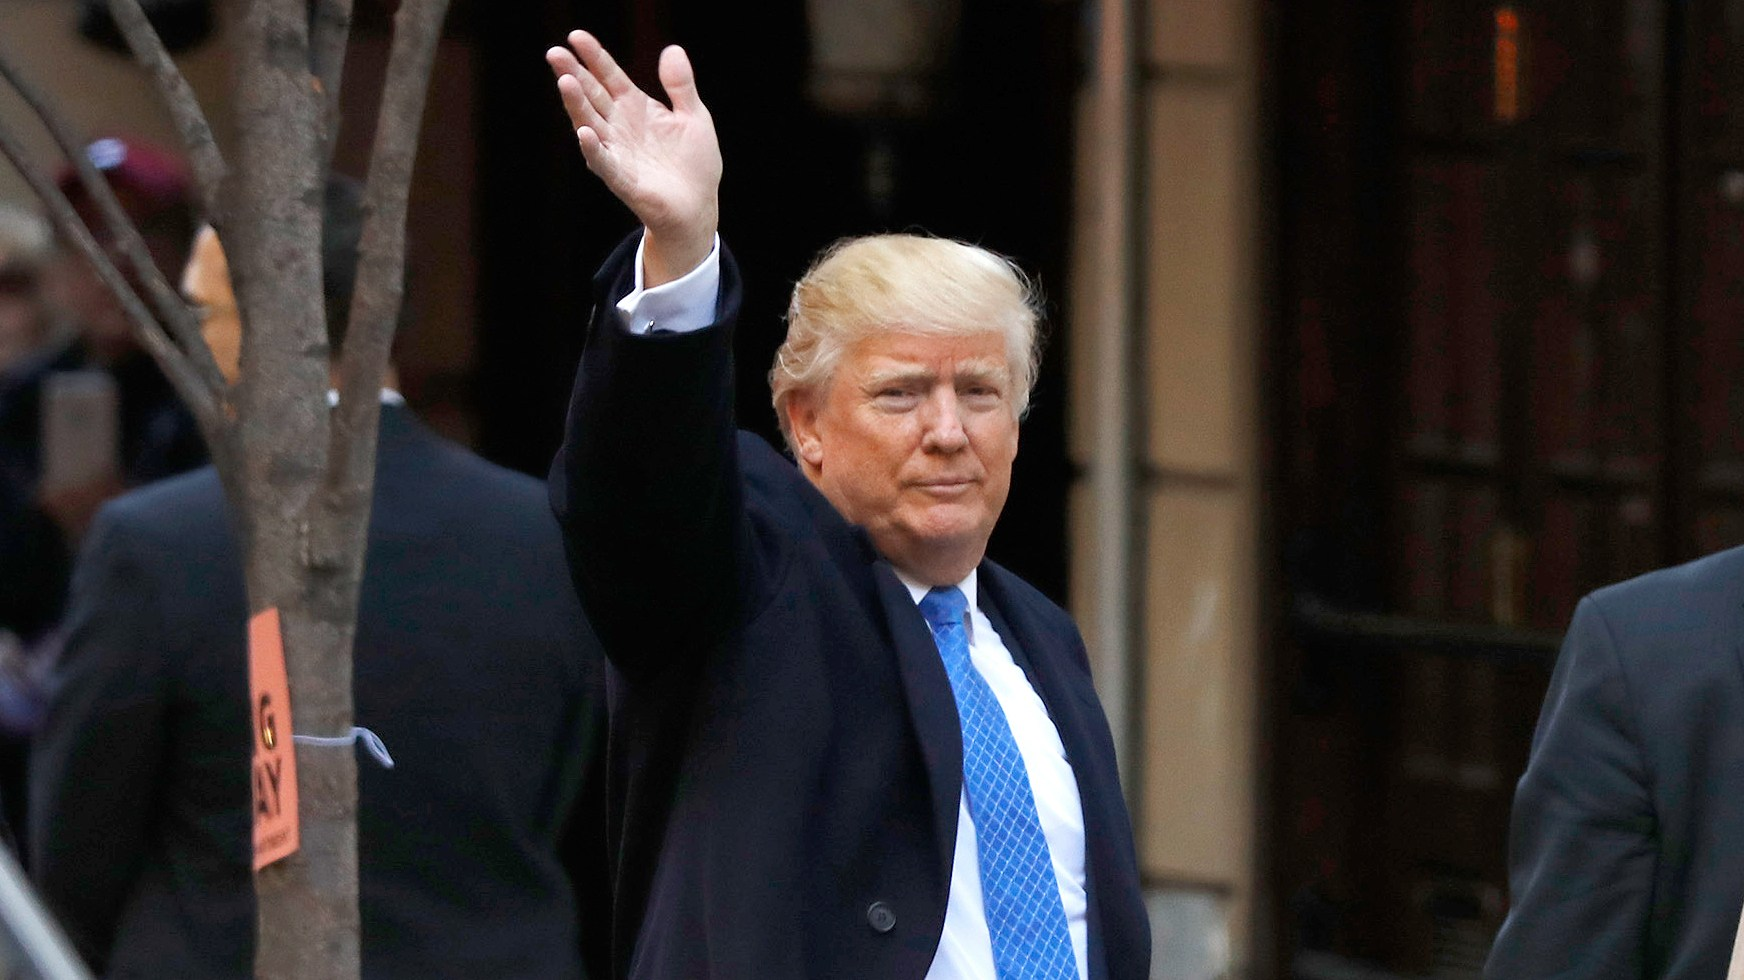 Republican presidential nominee Donald Trump arrives to vote at the Beckman Hill International School in New York City. After a contentious campaign season, Americans go to the polls today to choose the next president of the United States.